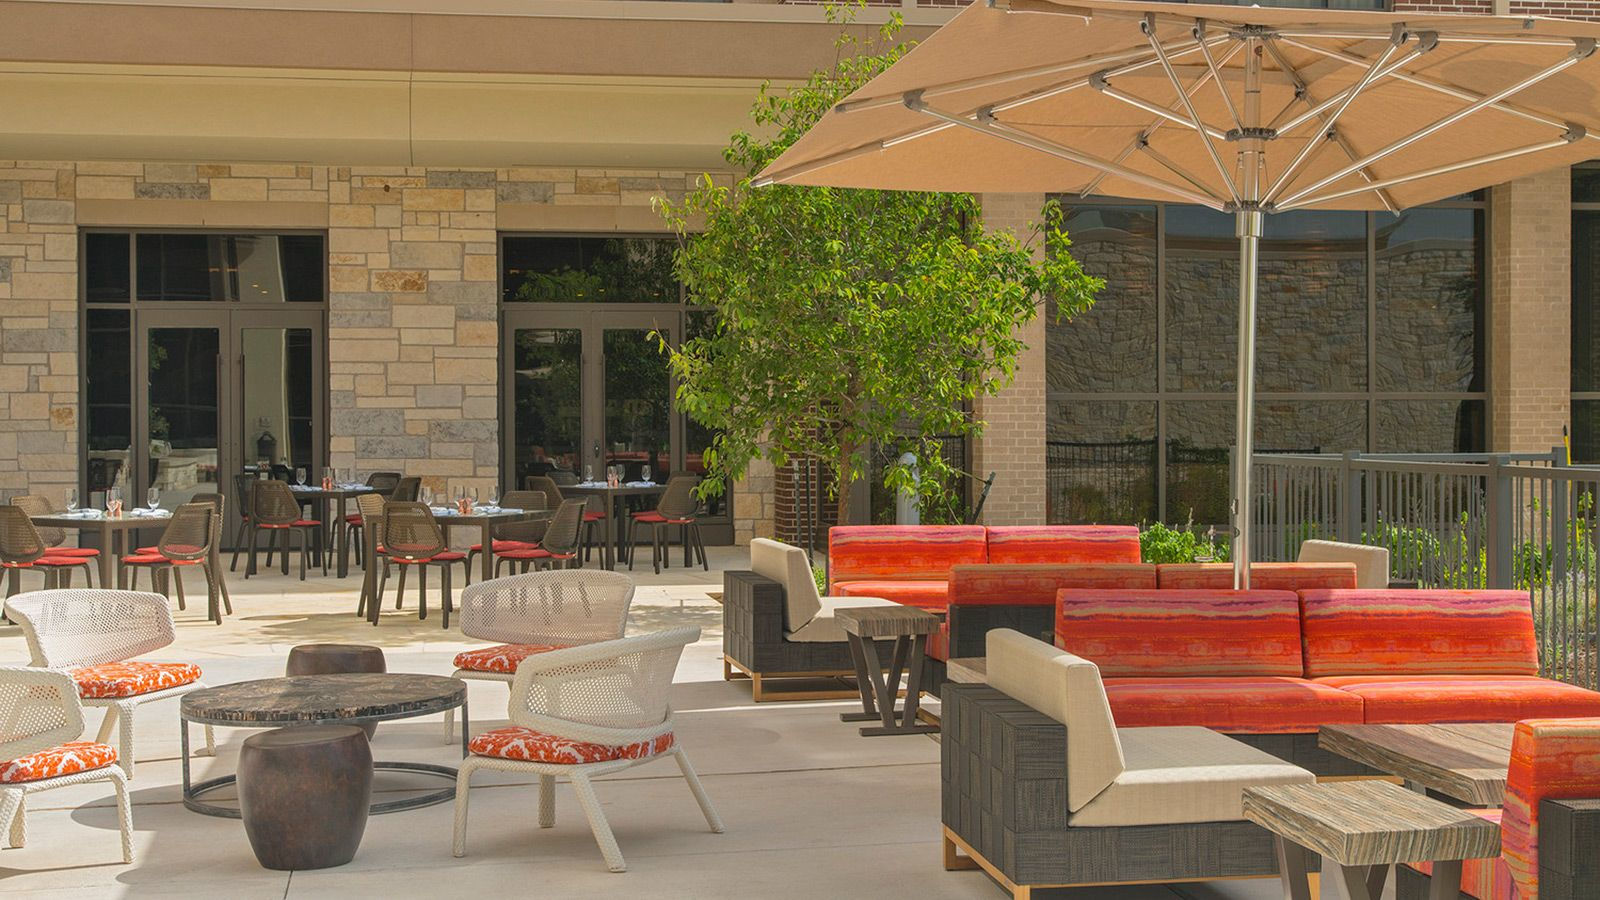 Georgetown TX Restaurants - Pool - Sheraton Austin Georgetown Hotel & Conference Center